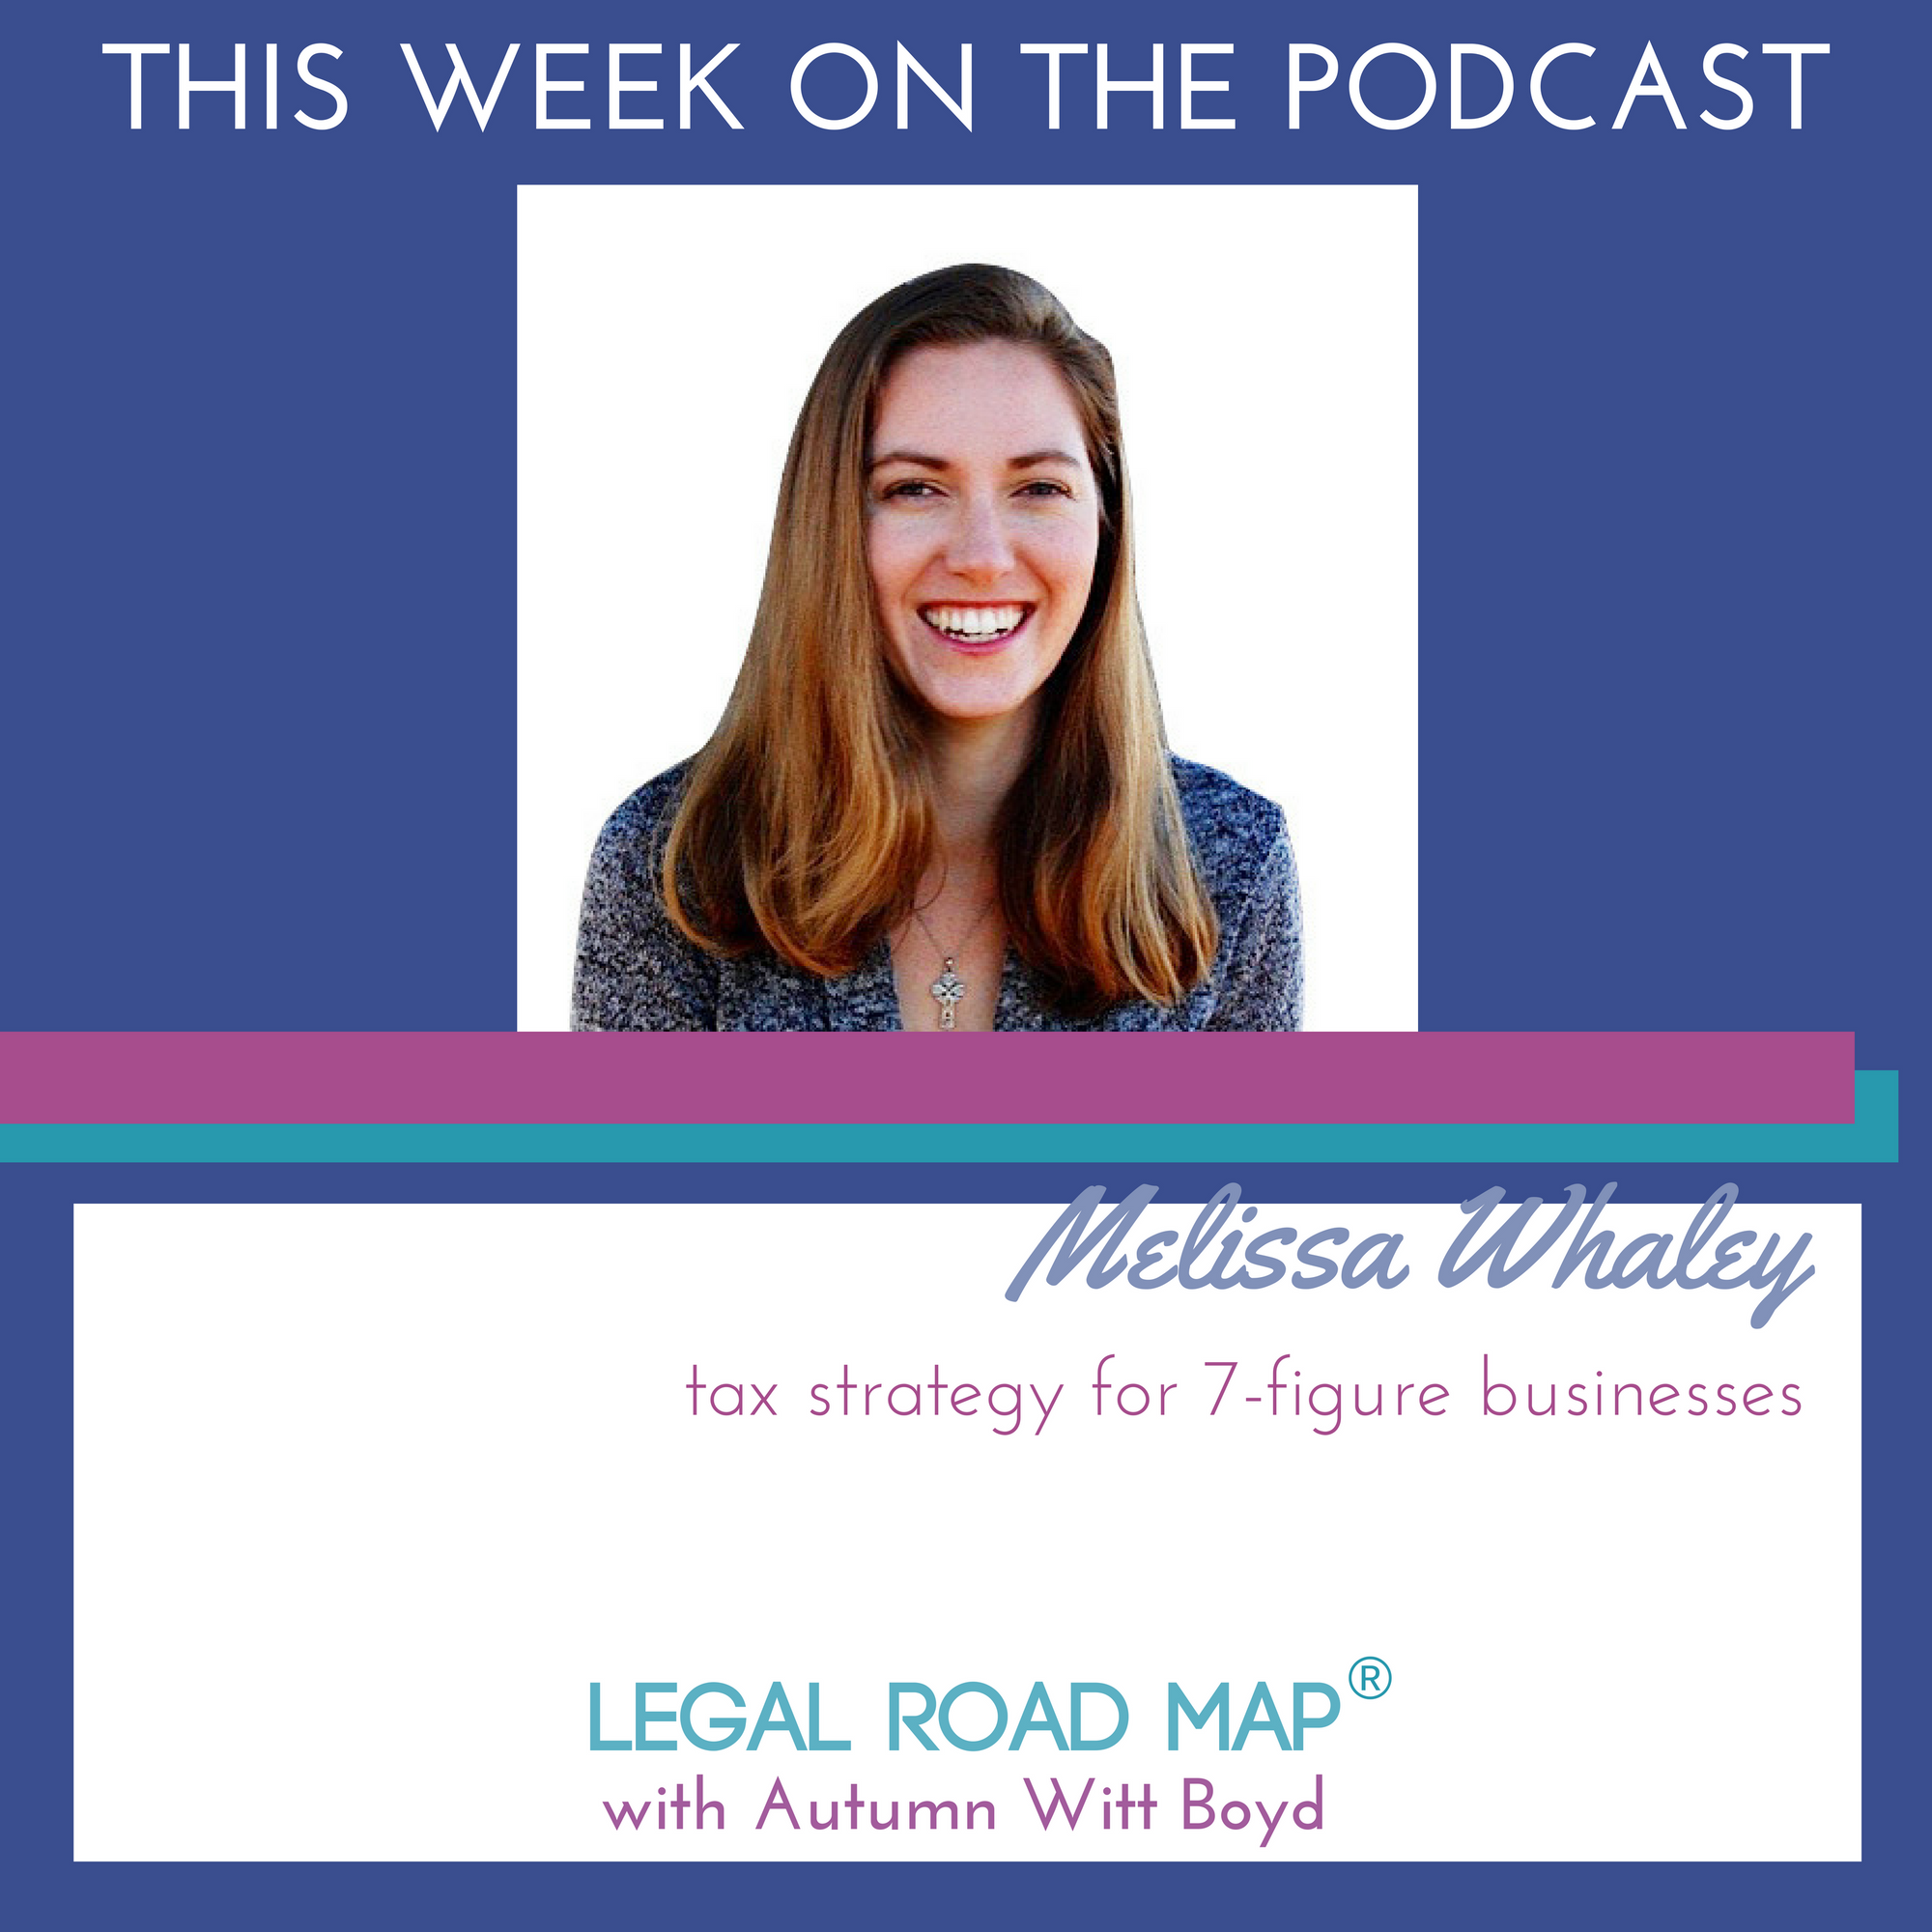 Tax Strategy for 7-figure Businesses with Melissa Whaley (Legal Road Map® Podcast S3E42)